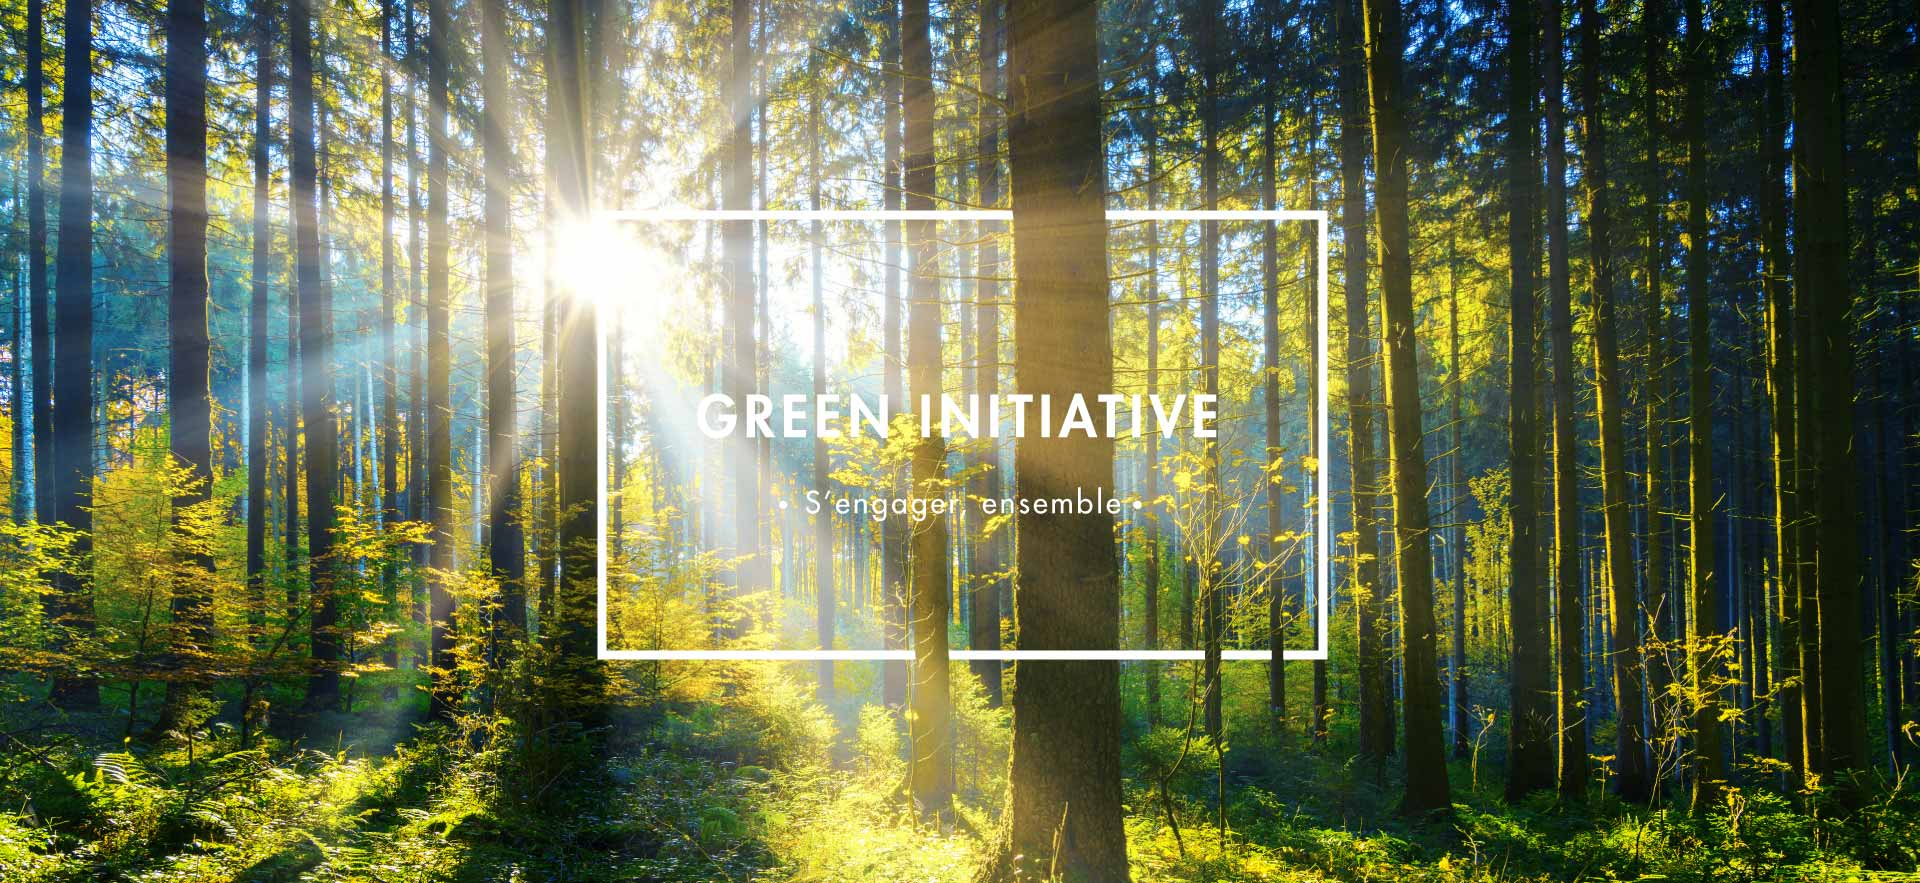 Green initiative asap